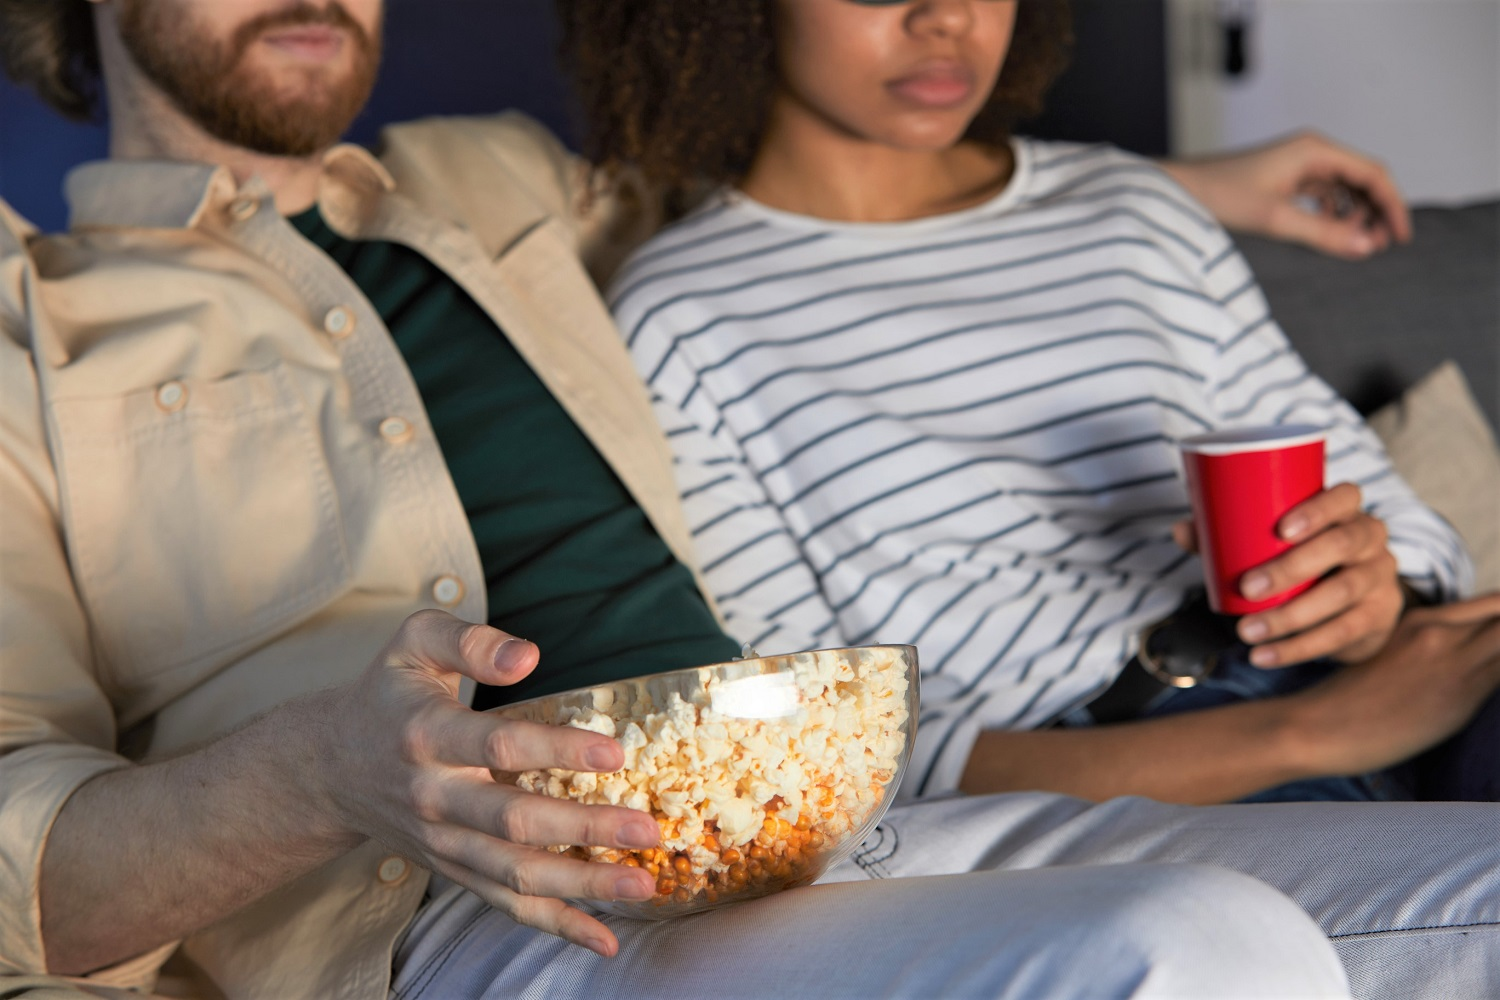 30 Movies to Learn About Social Injustice